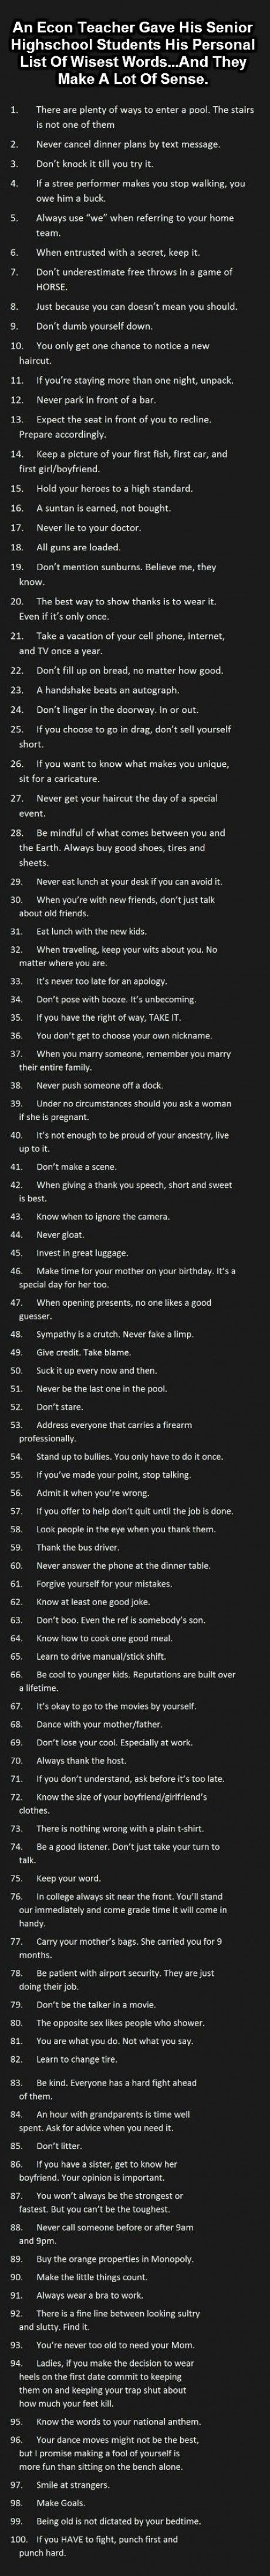 Wise words. Especially 4,8,18,21,33,38,46,60,63, & 81!! There all pretty good.